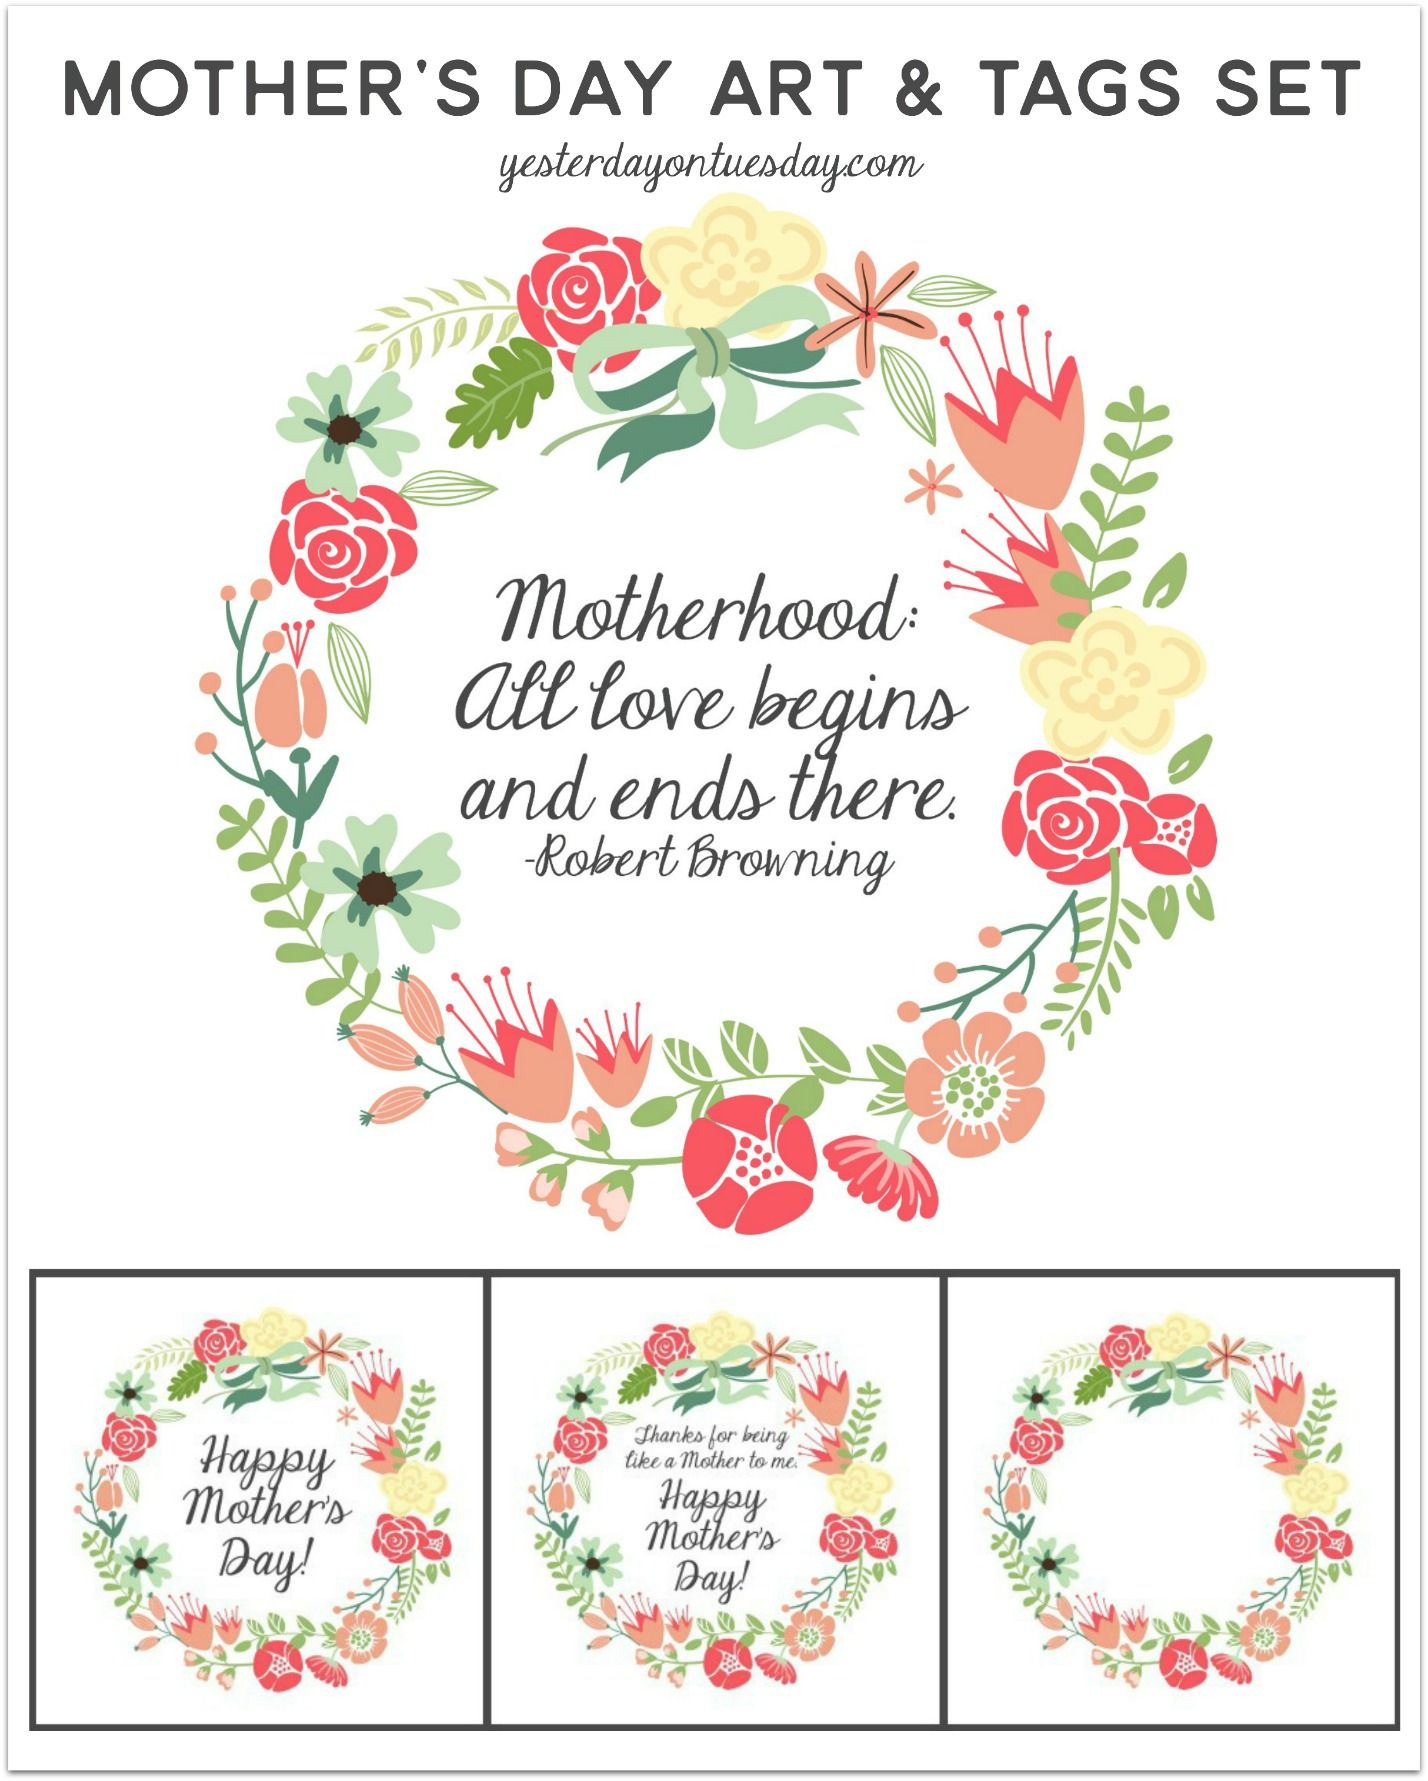 mother 39 s day art and tags for decor and gift giving frame or place on clipboard for effortless. Black Bedroom Furniture Sets. Home Design Ideas